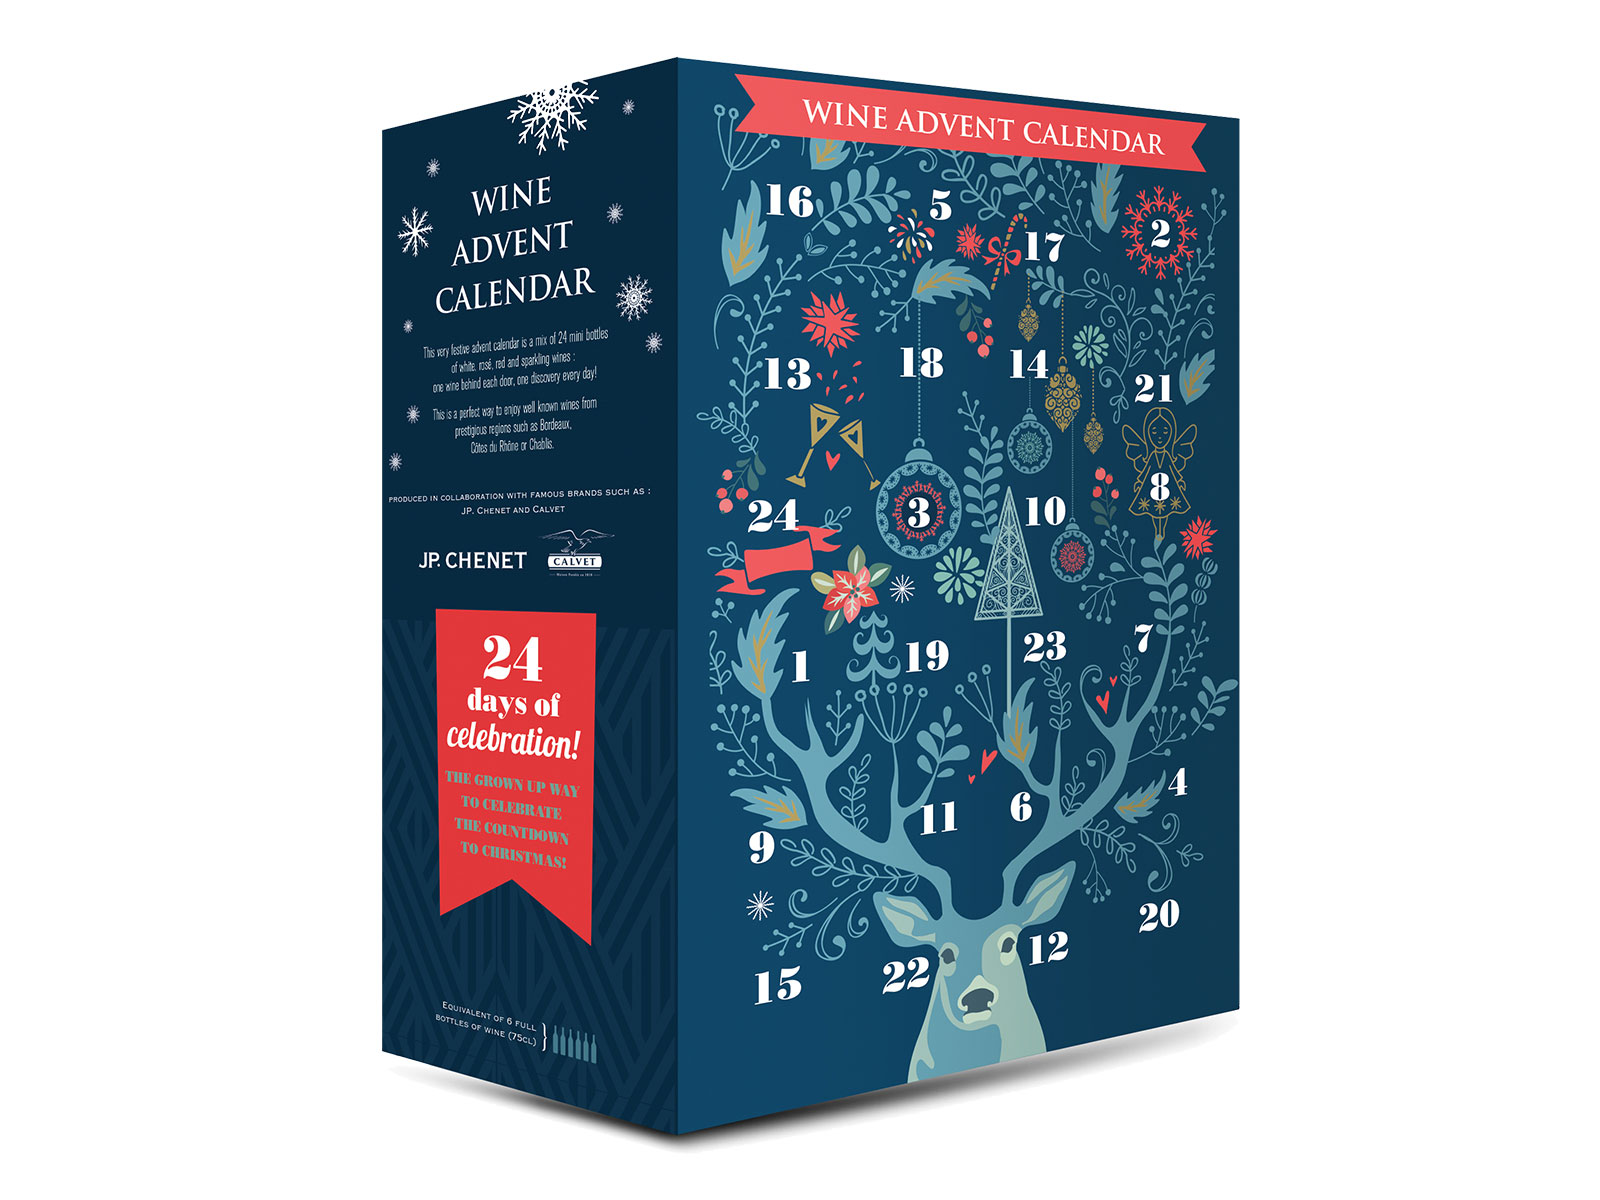 wine advent calendar from aldi in UK